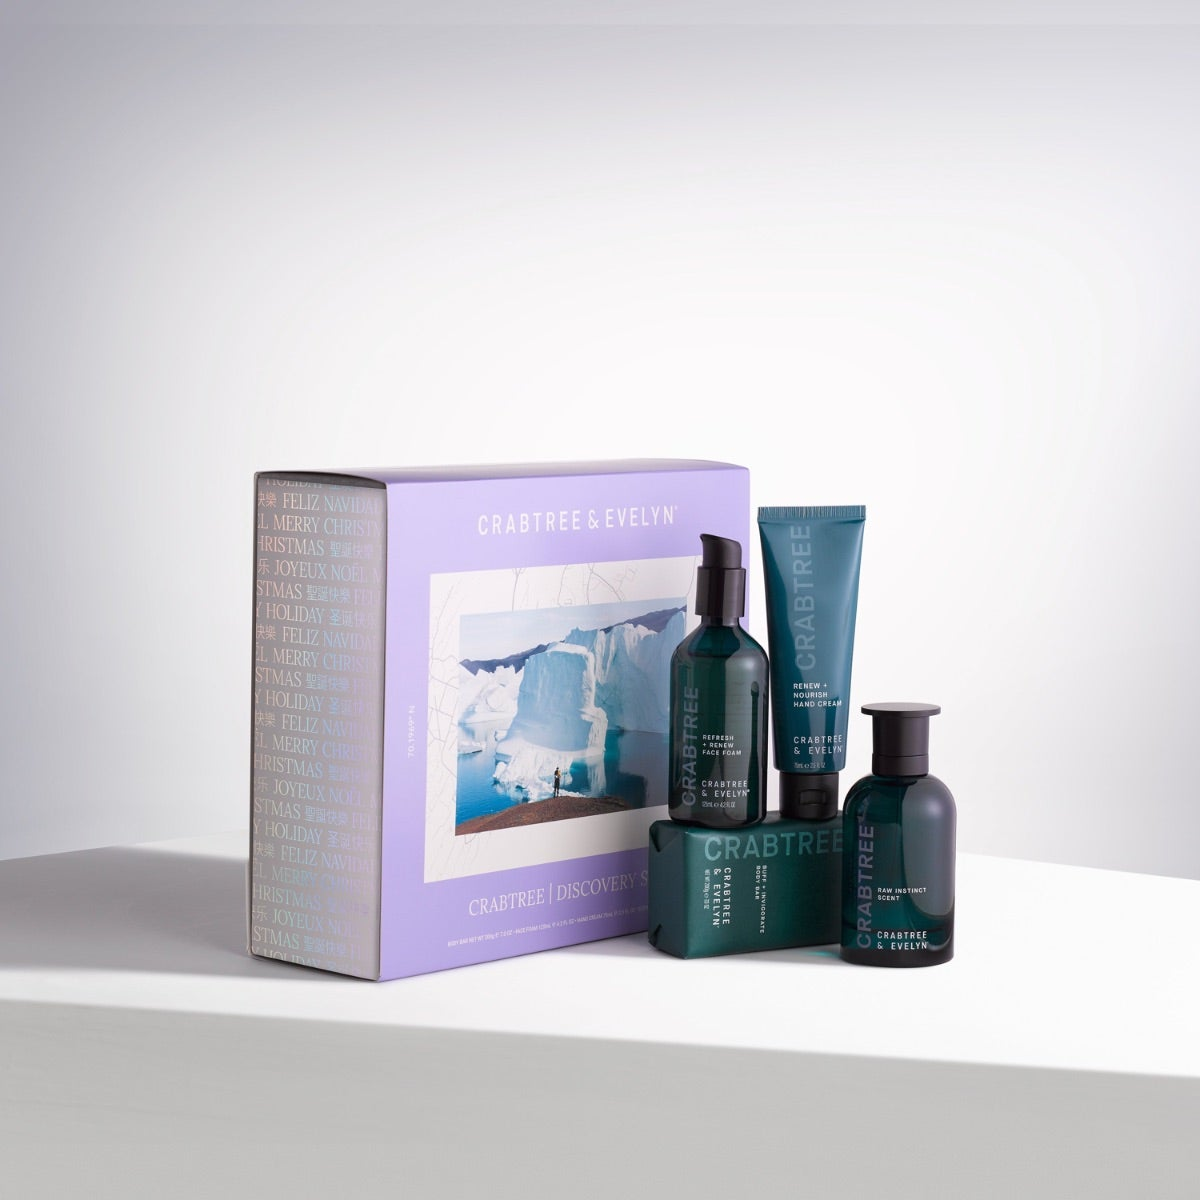 Crabtree Discovery Gift Set